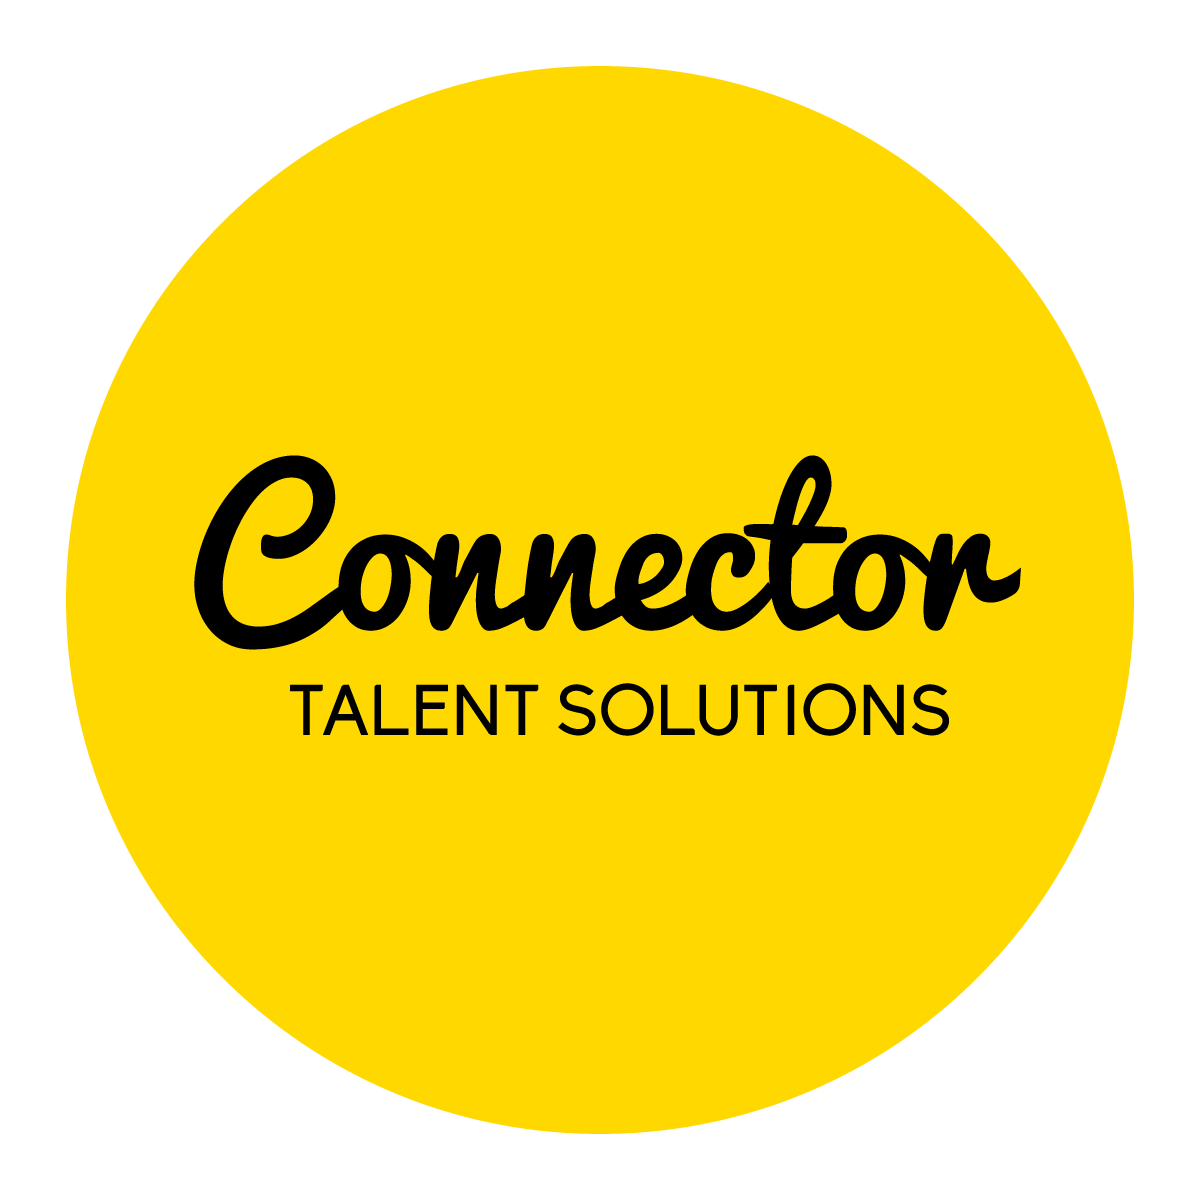 Connector Talent Solutions